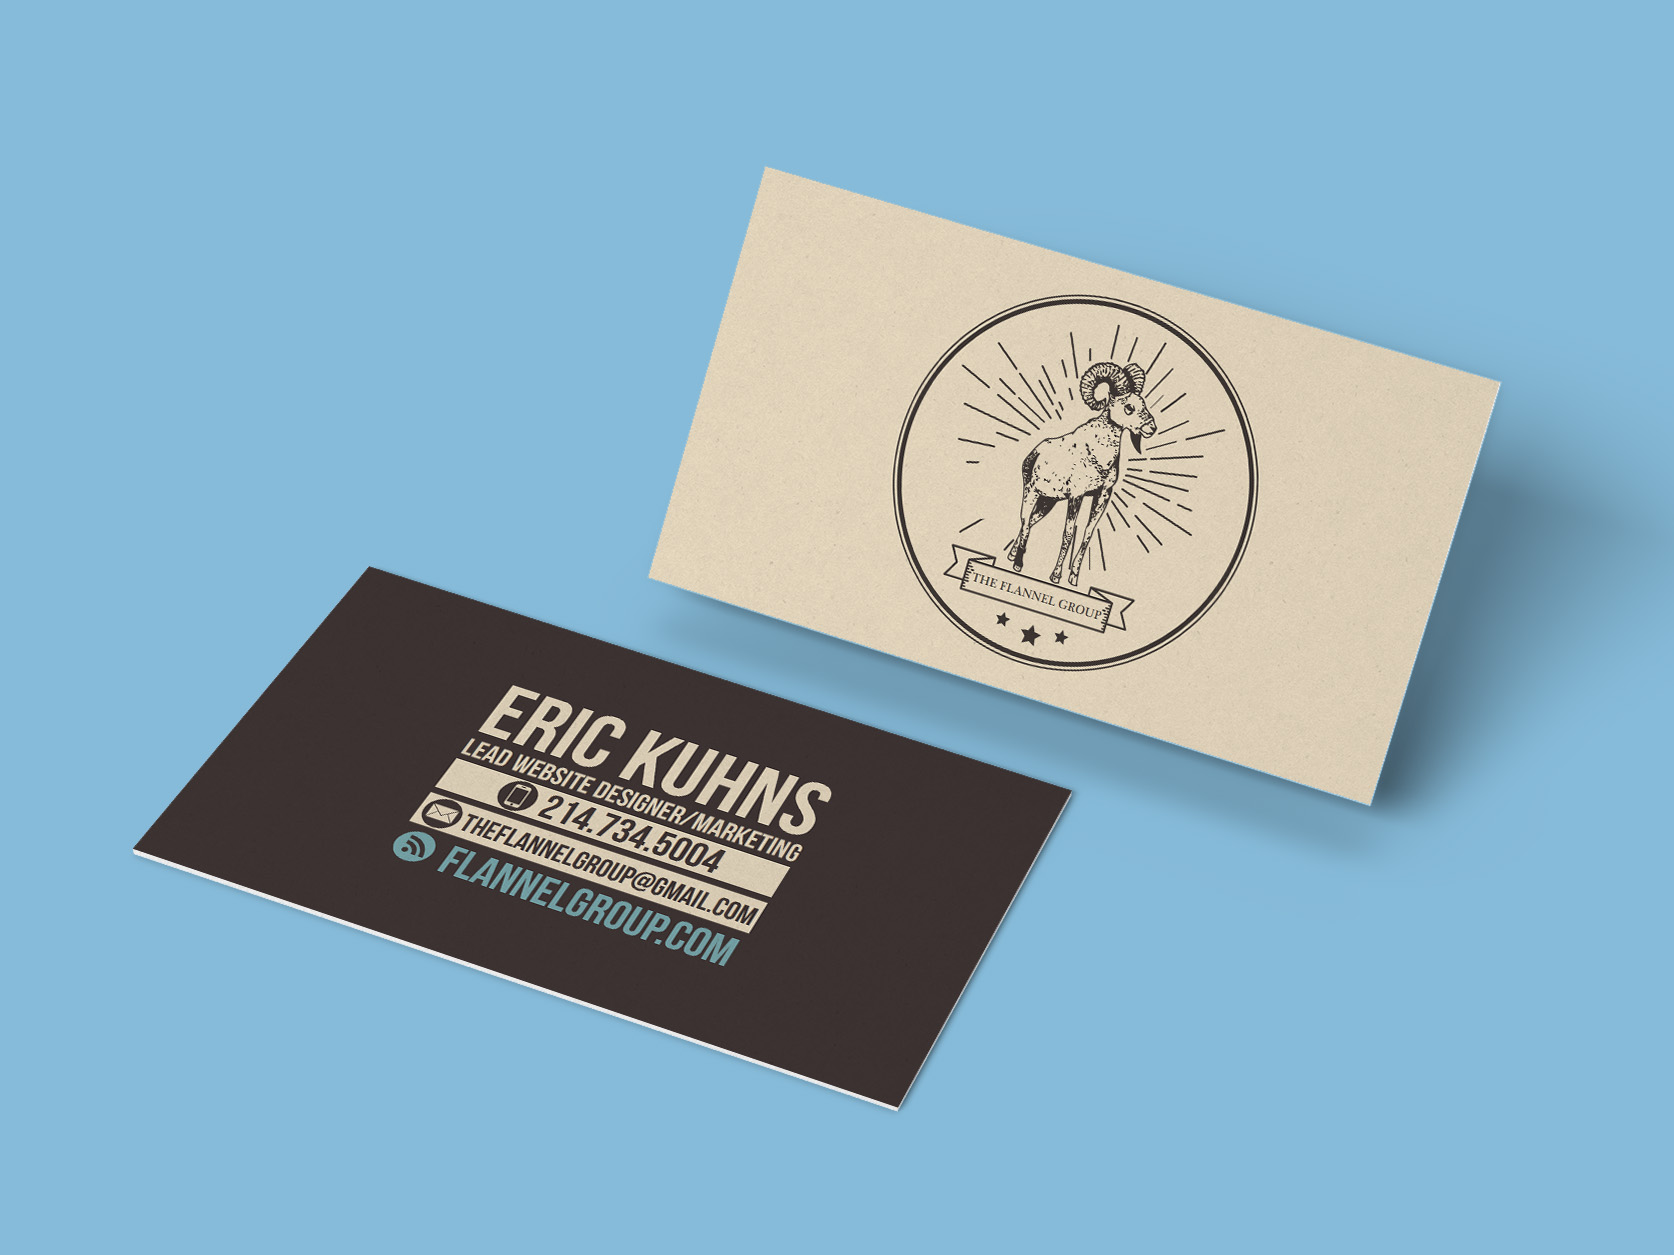 Eric Flannel group Businesscard  .jpg